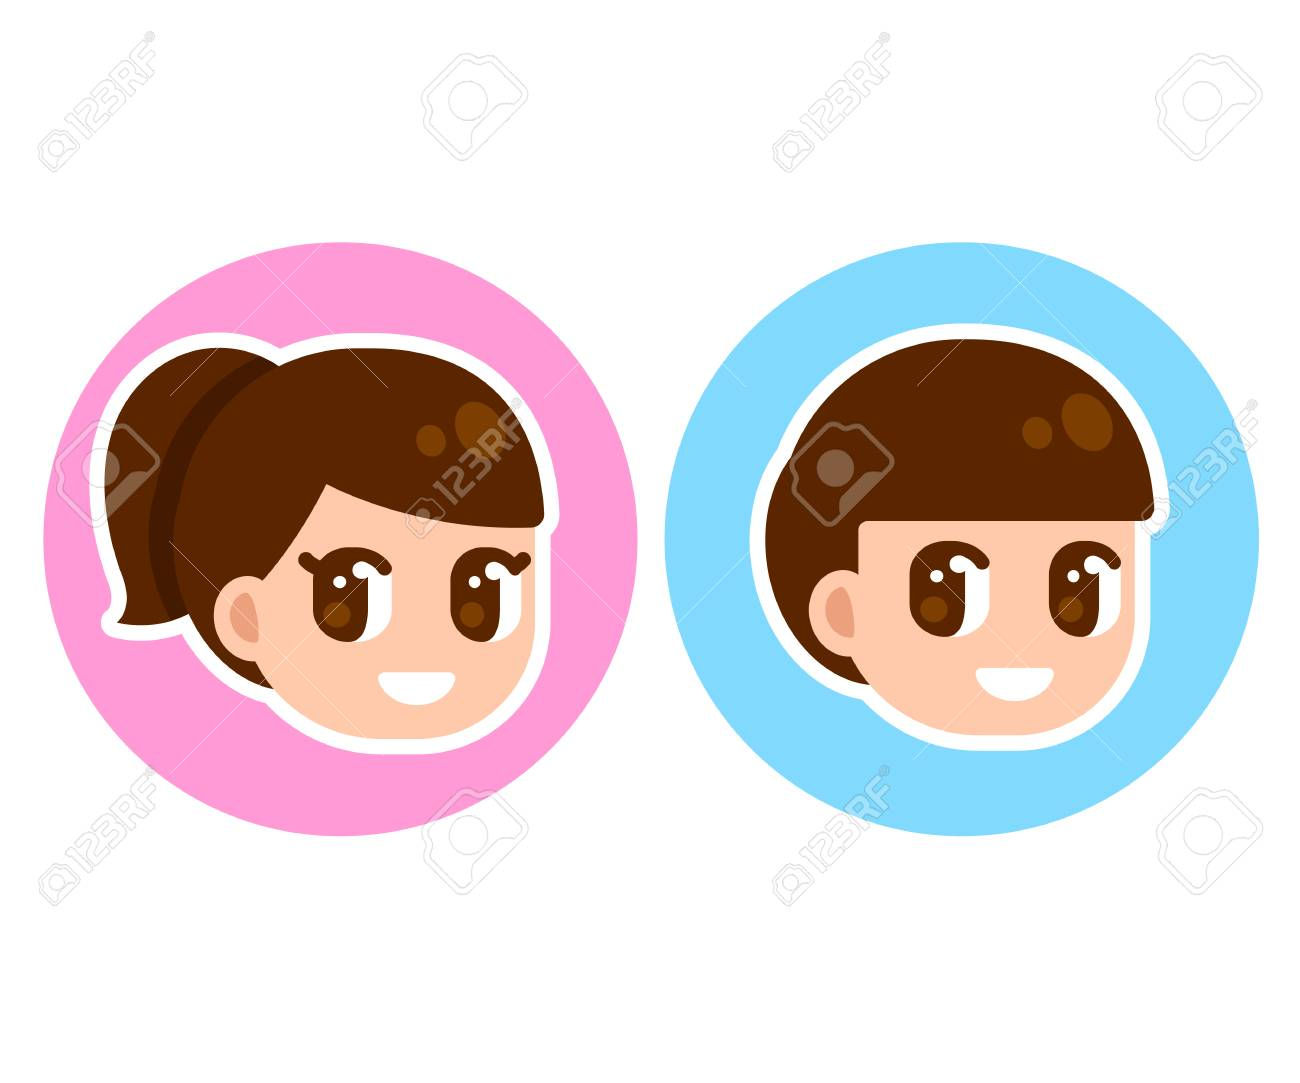 Cute Anime Children Face In Circle Boy And Girl Character Set